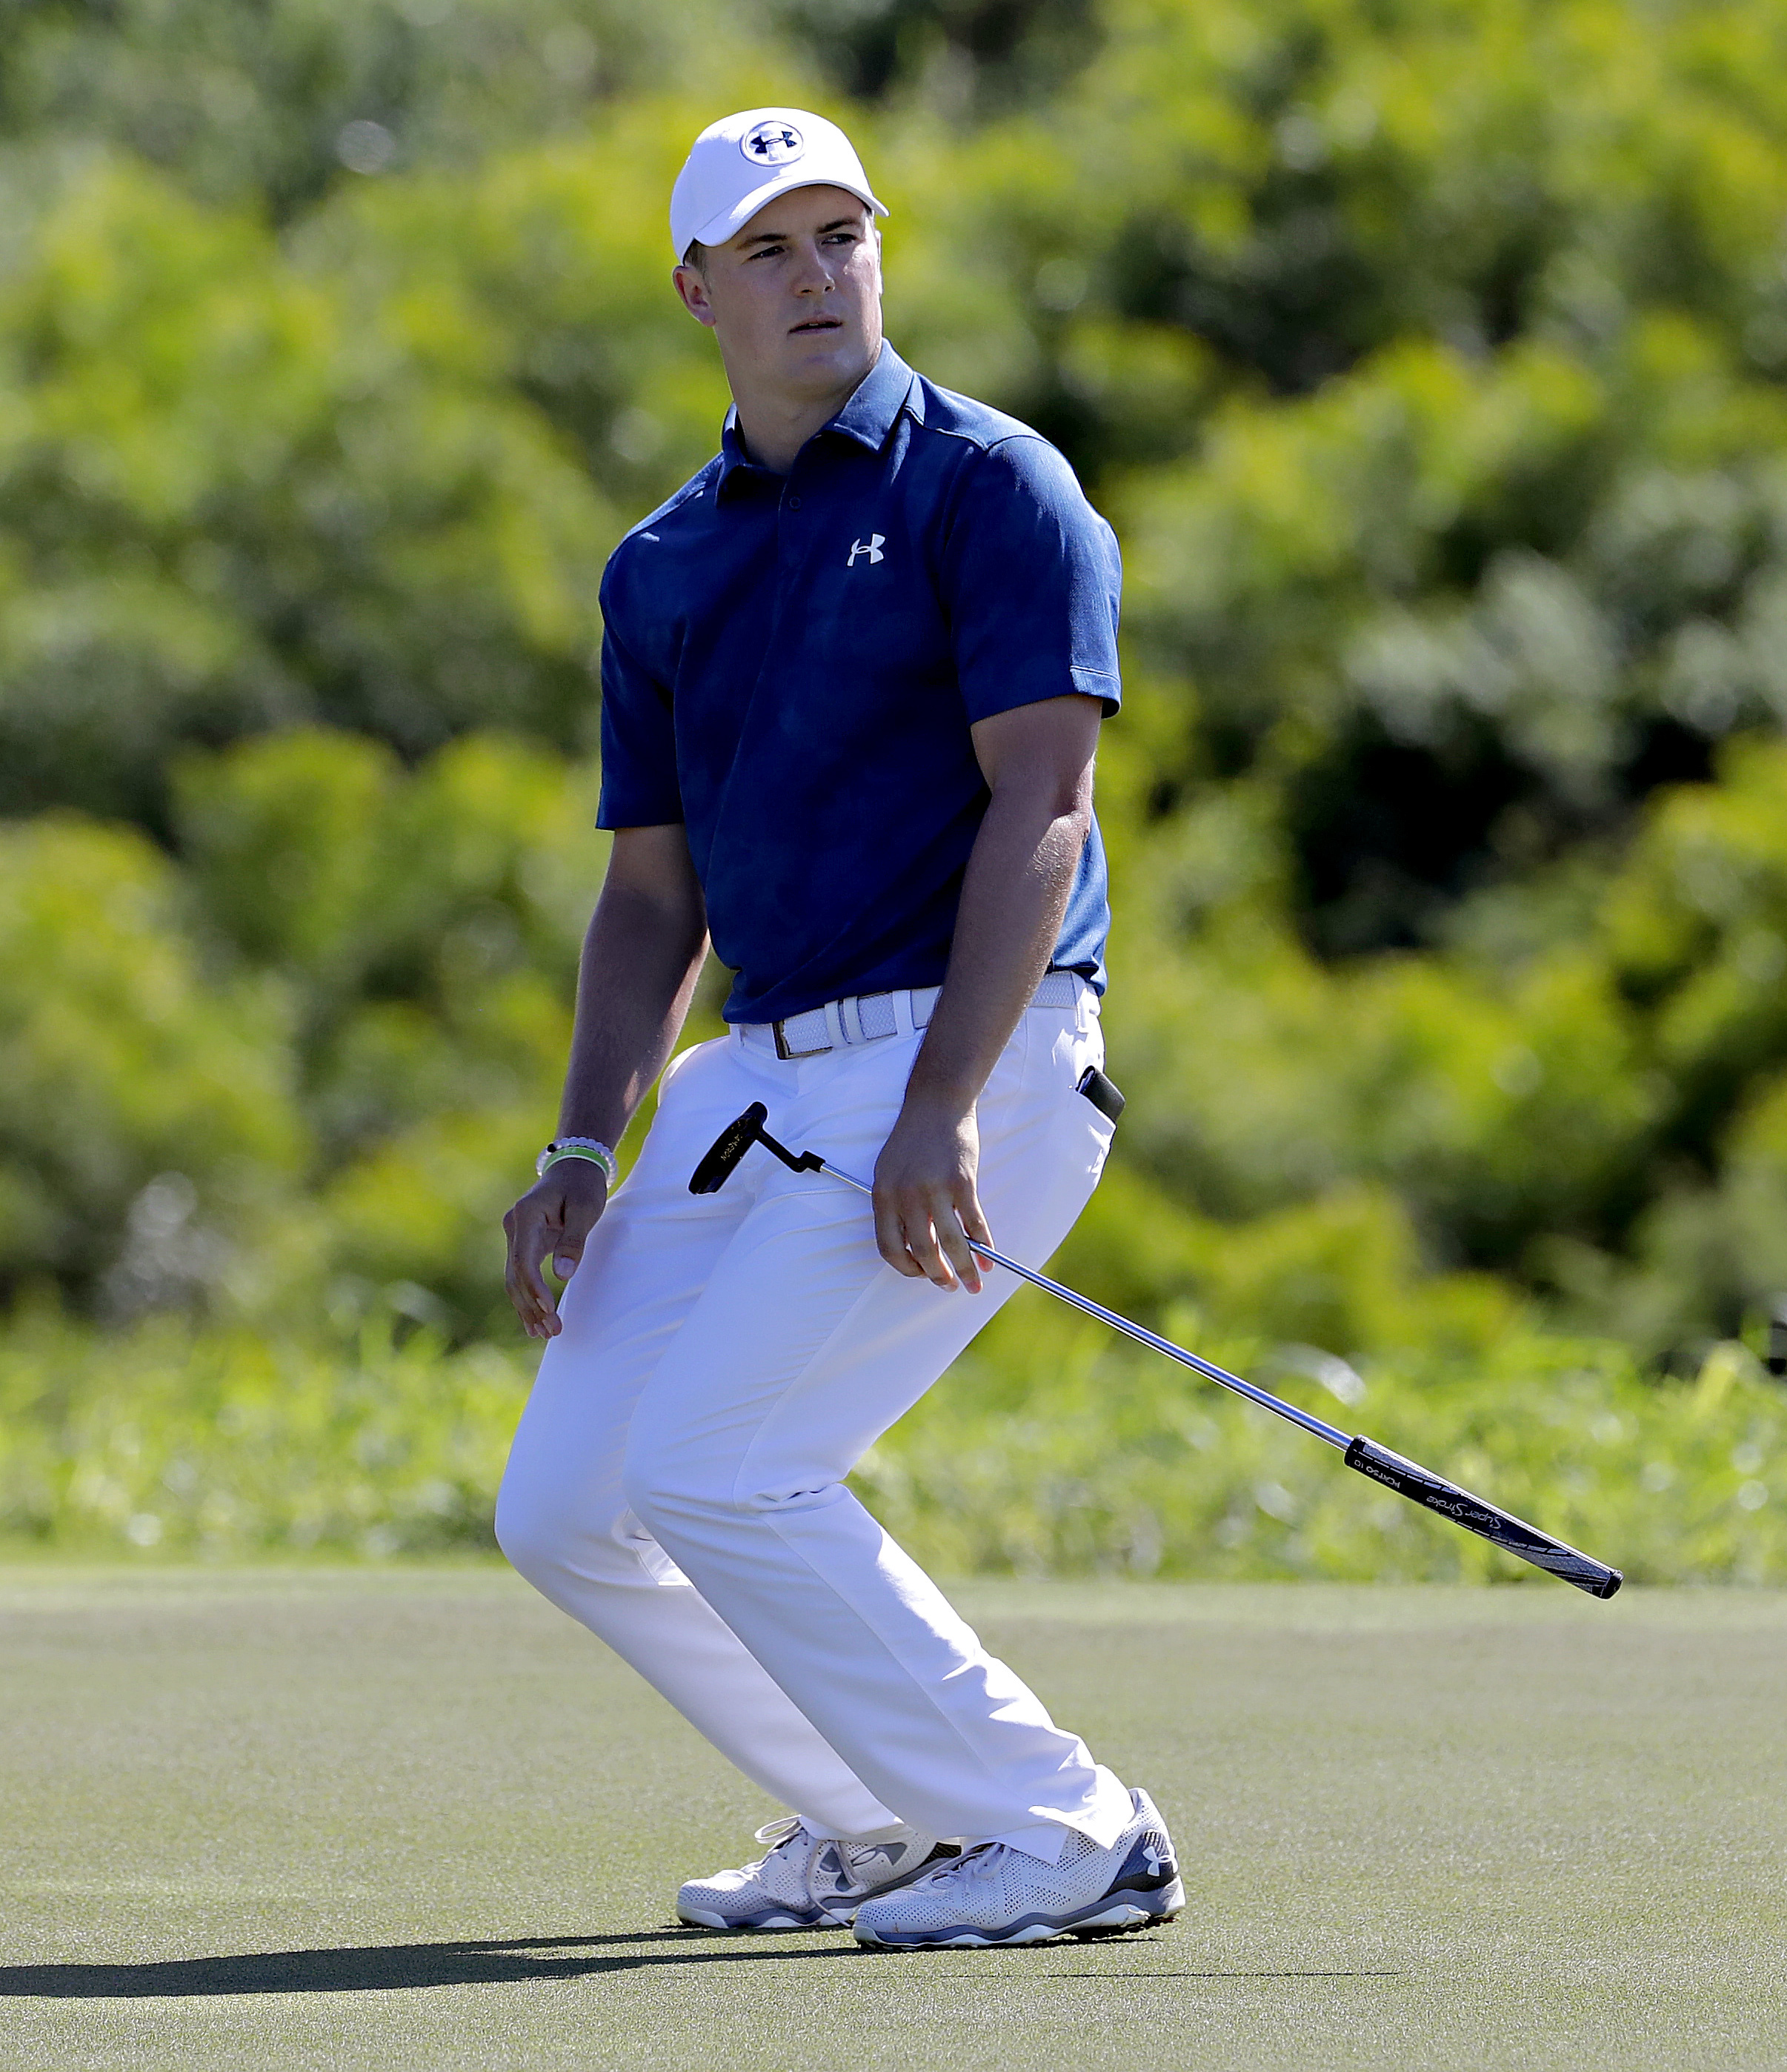 Jordan Spieth reacts to a missed birdie putt on the 17th green during the final round of the Tournament of Champions golf event, Sunday, Jan. 8, 2017, at Kapalua Plantation Course in Kapalua, Hawaii. (AP Photo/Matt York)